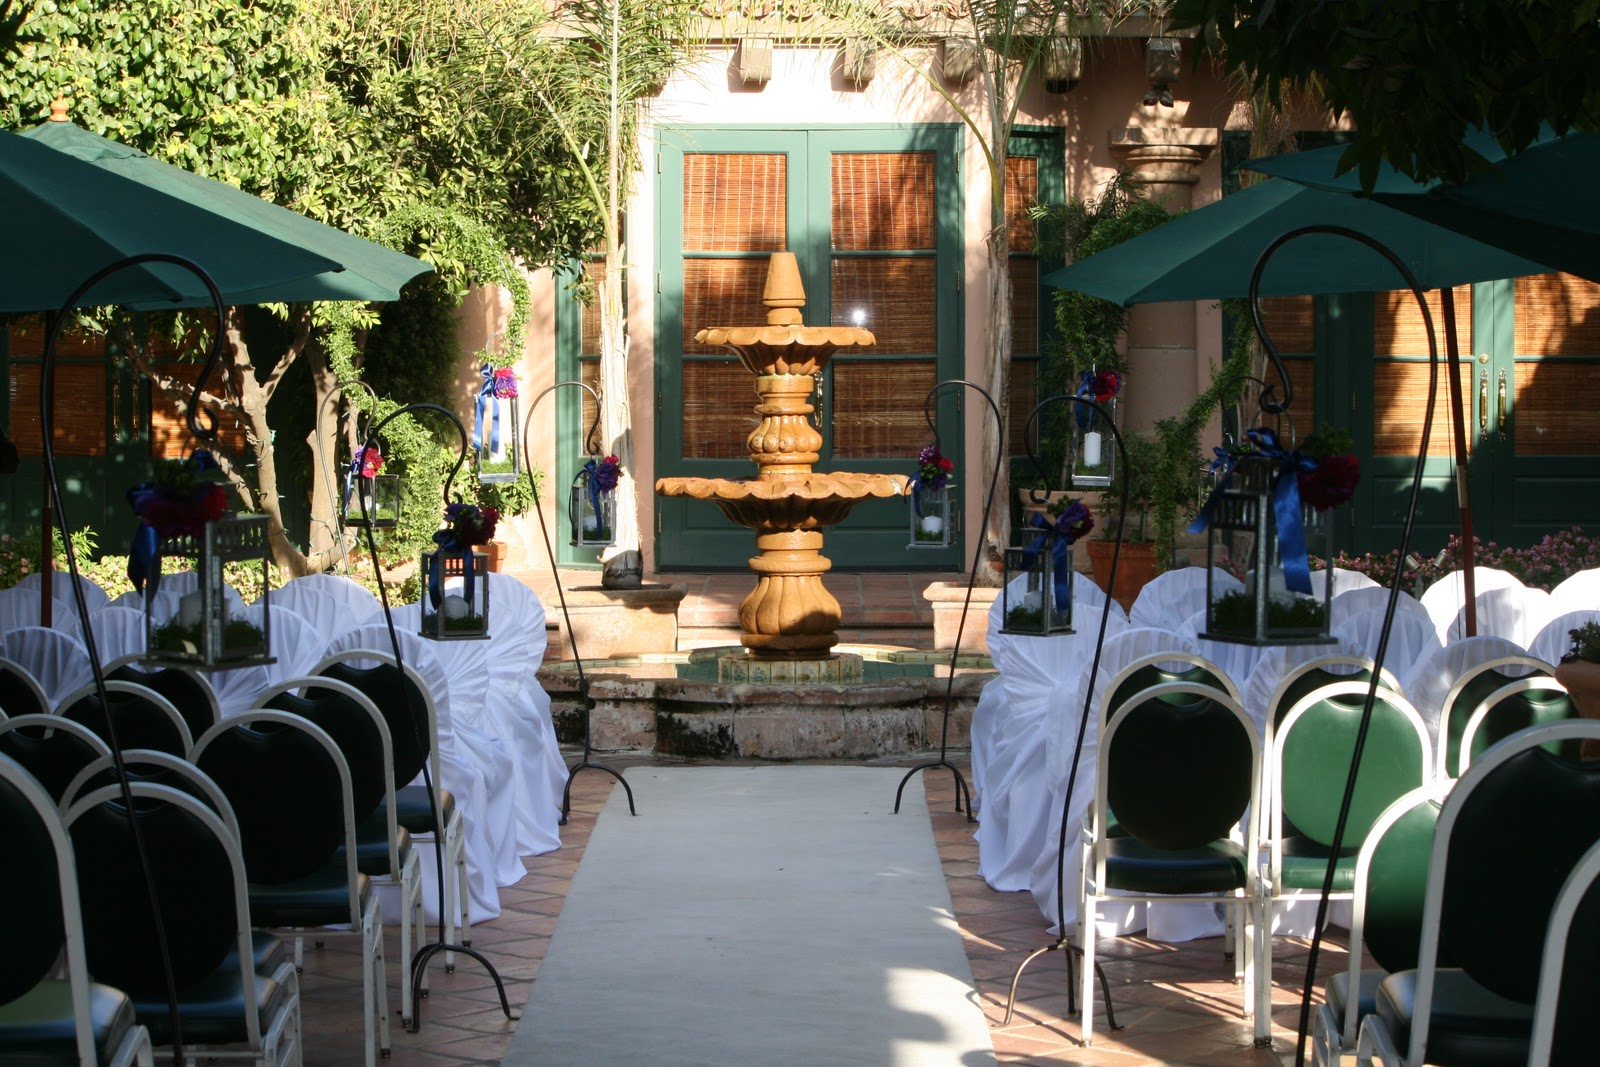 We Traveled Out To Harris Ranch For Their Wedding And Reception Seen Here In The Courtyard